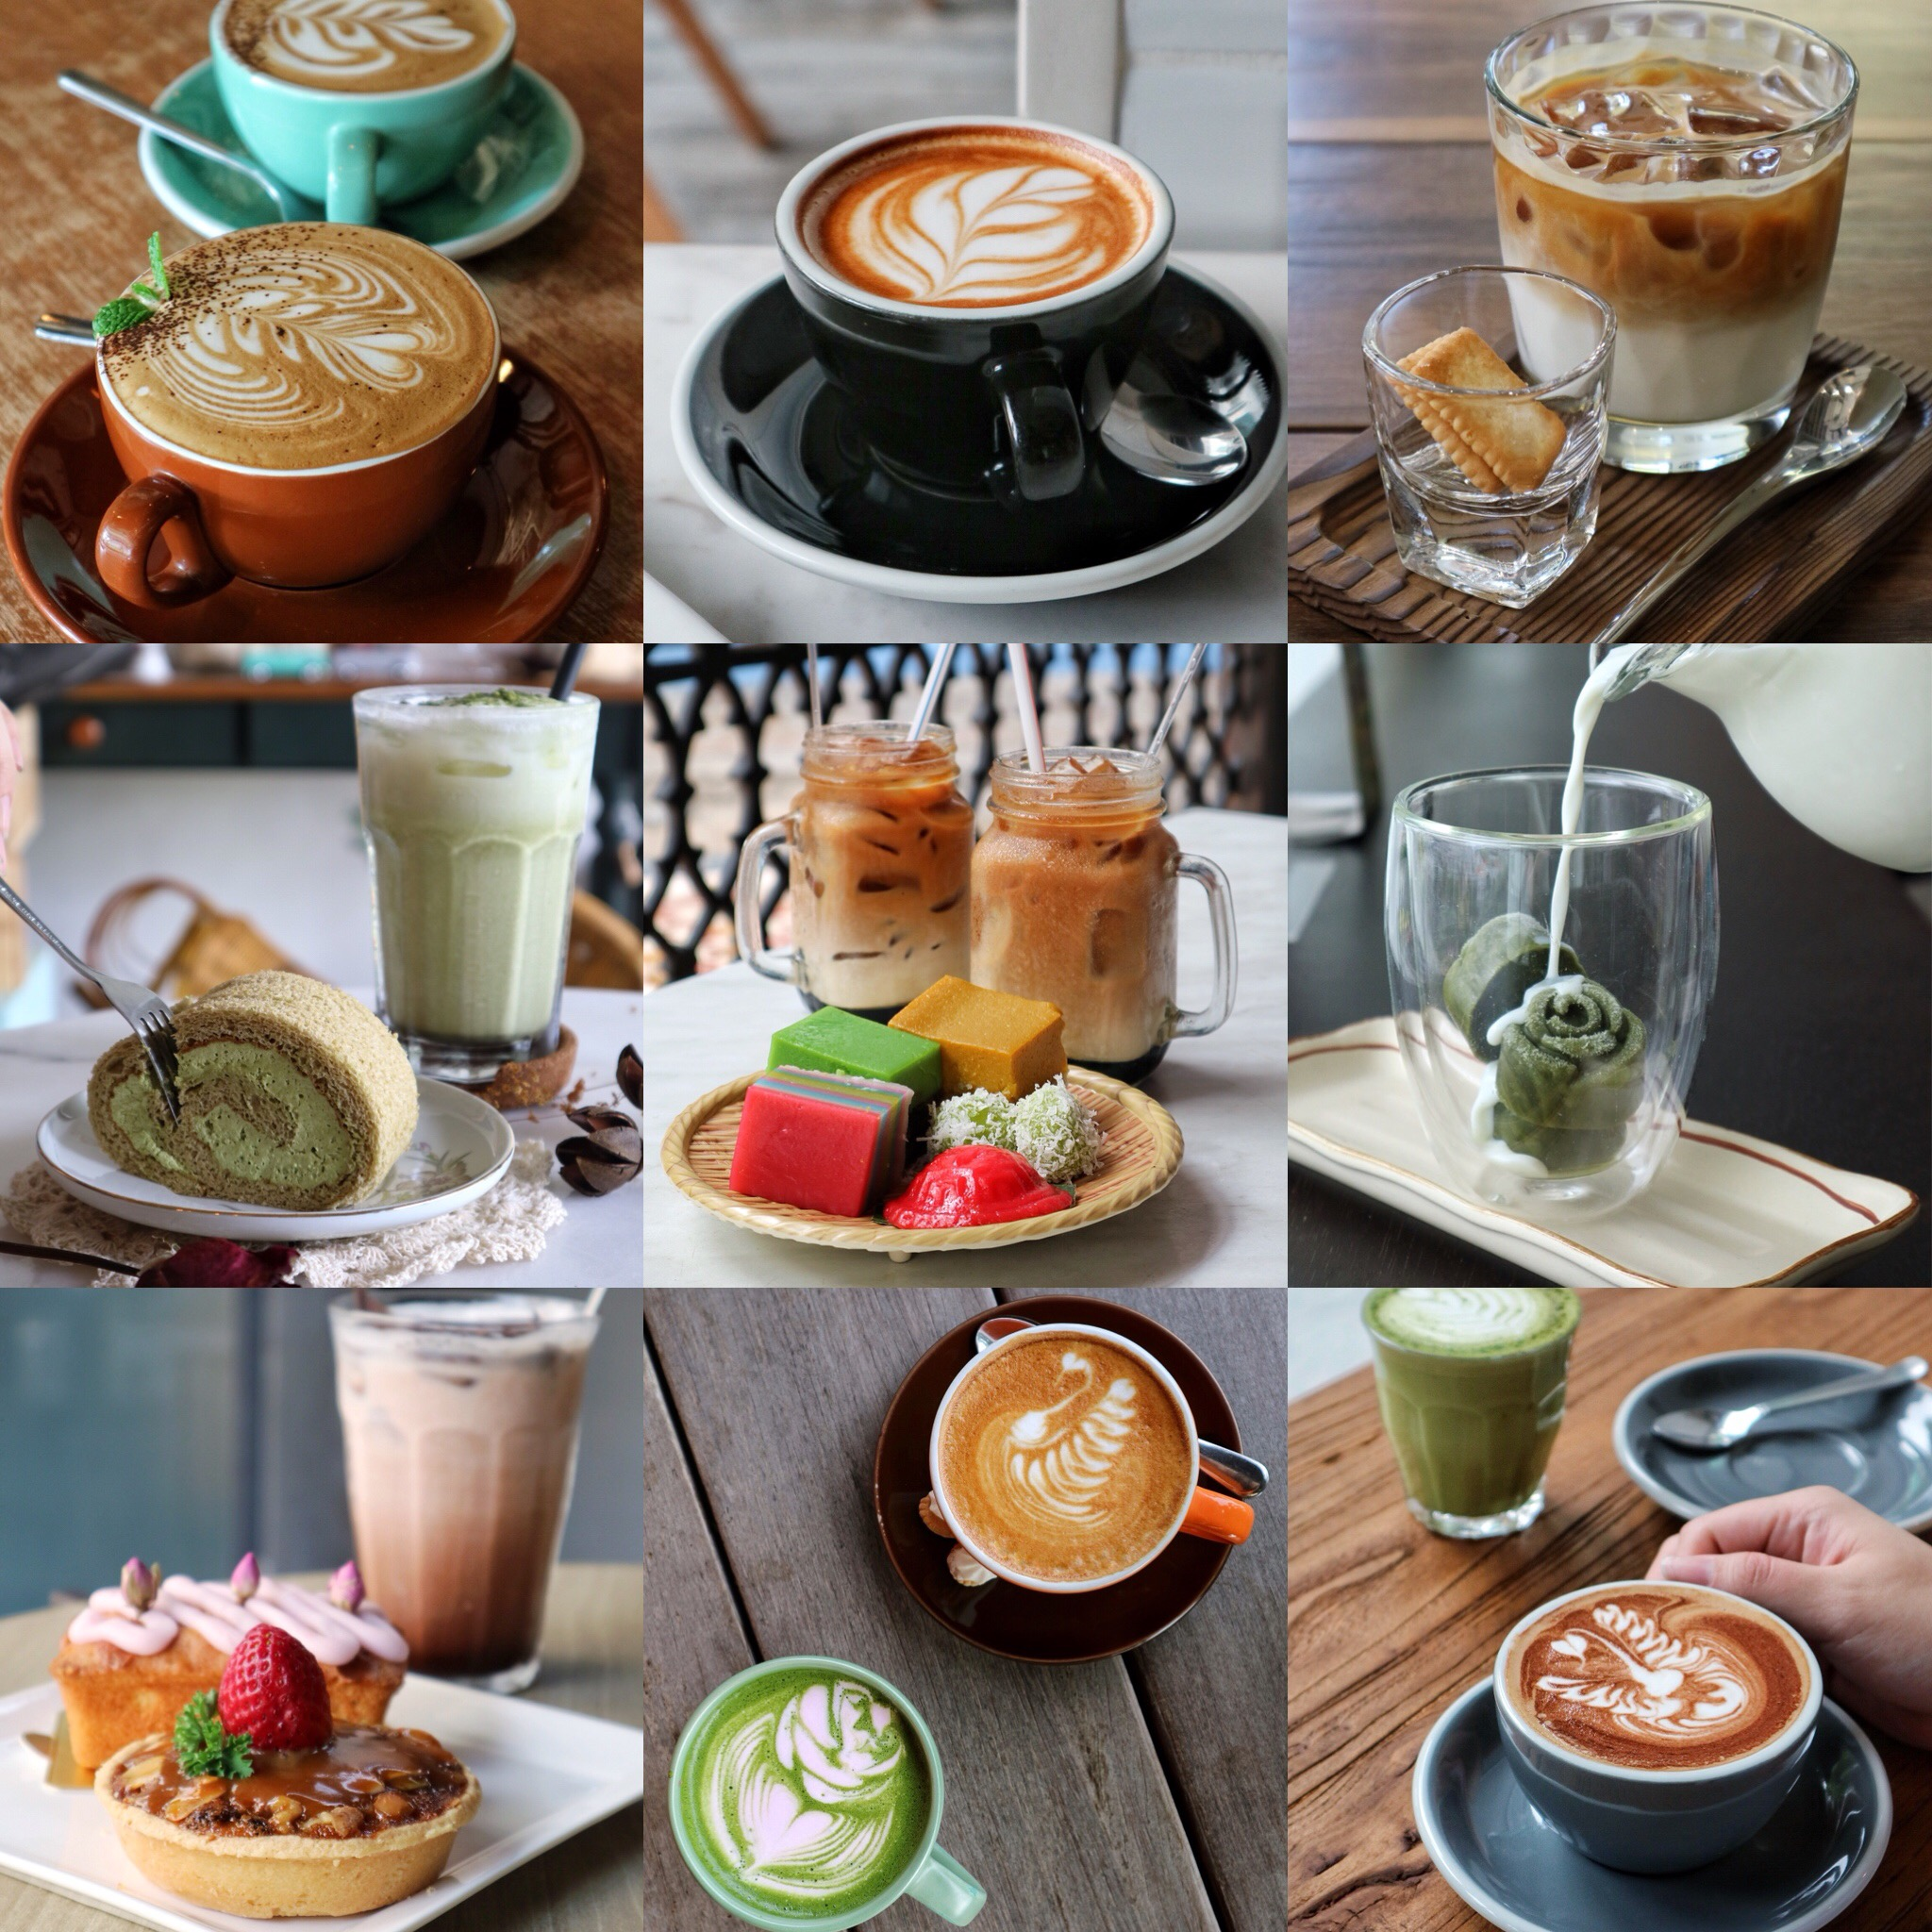 9 Cafes in Singapore for Good Coffee & Alone Time